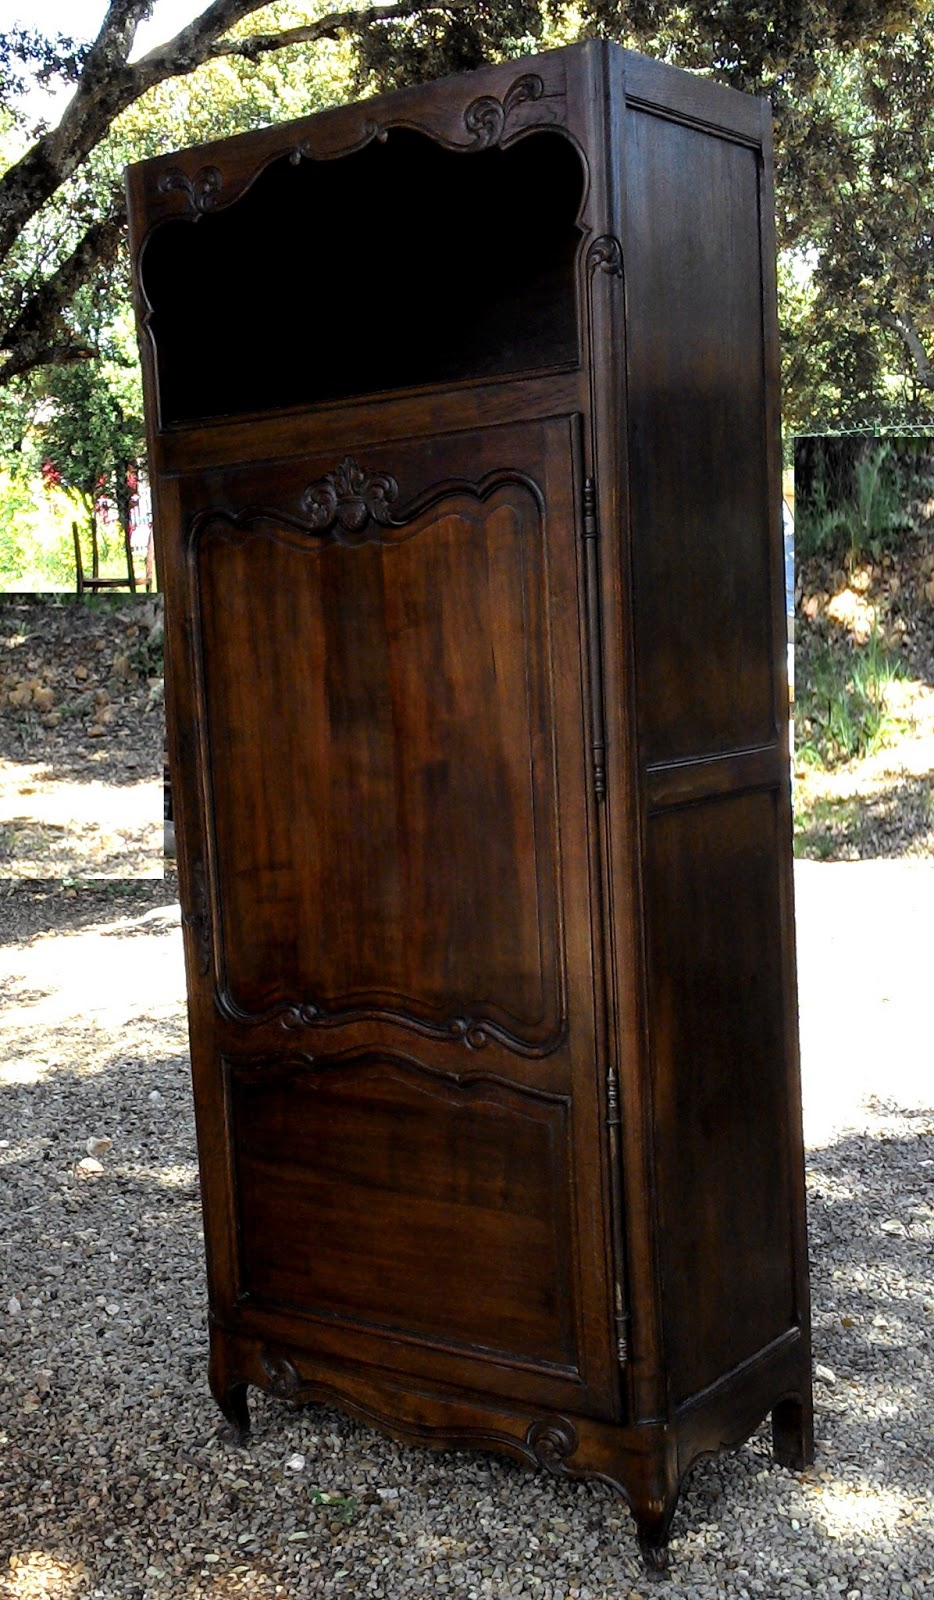 ancien meuble armoire bonneti re pieds coquille a niche homme debout chambre ch ne antique. Black Bedroom Furniture Sets. Home Design Ideas